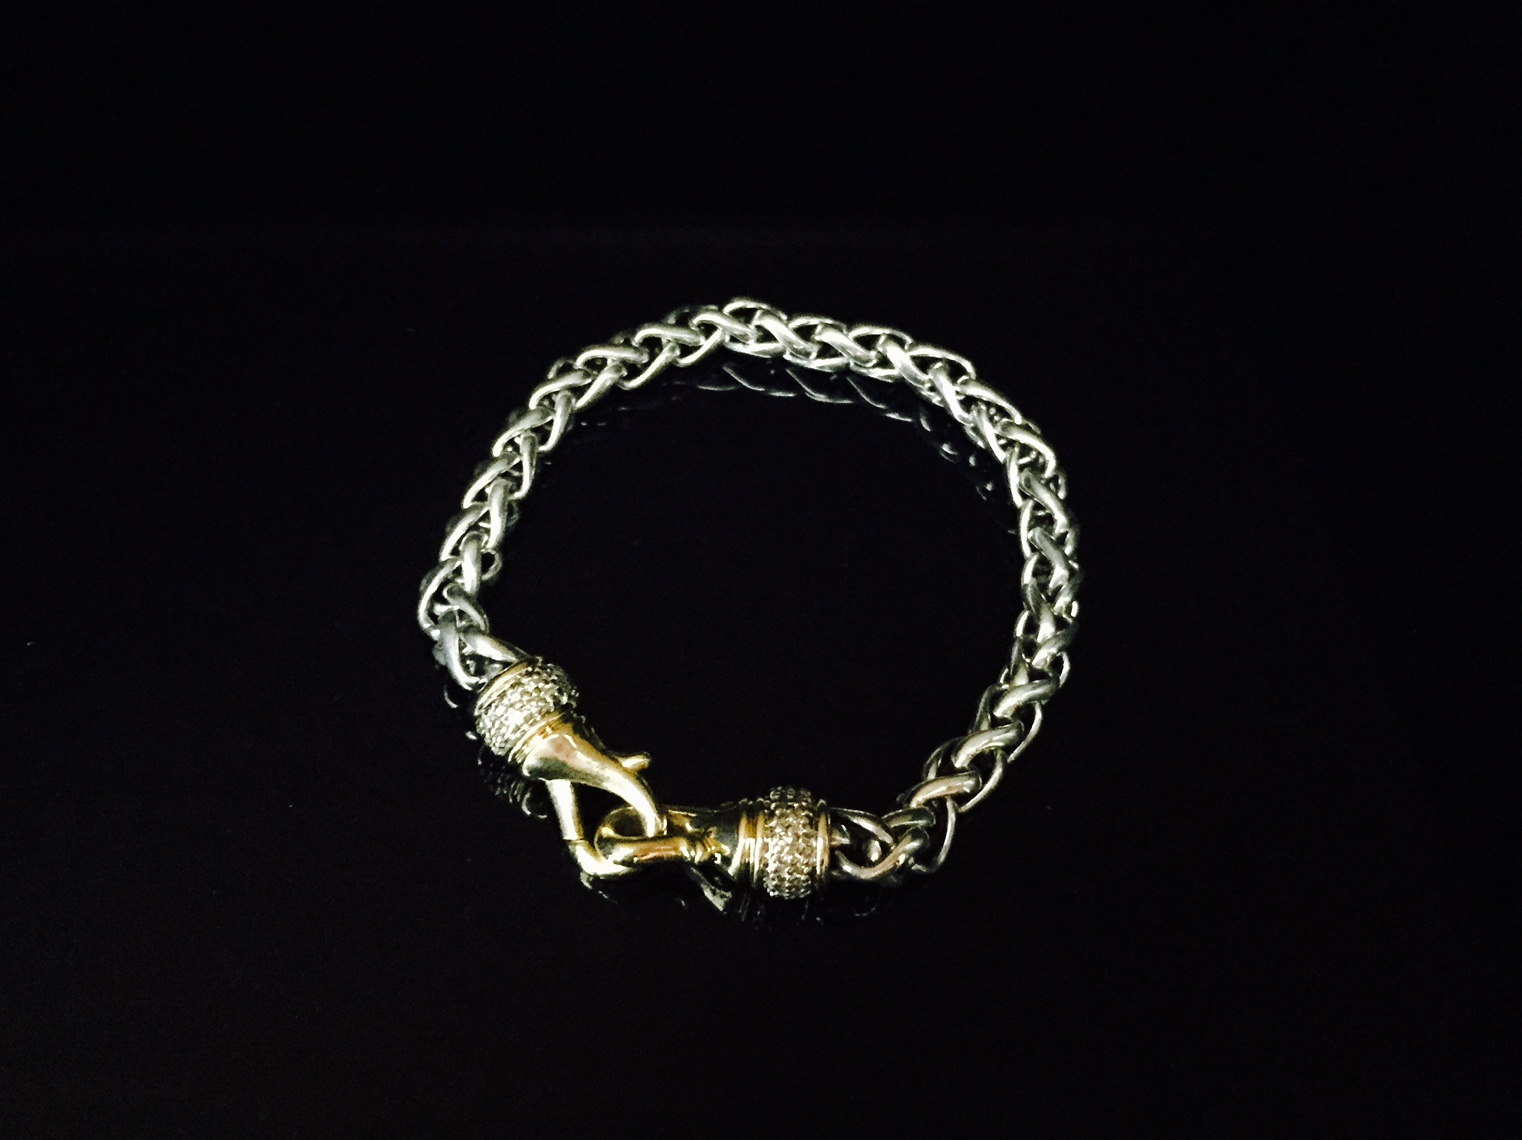 David Yurman Wheat Diamond Bracelet - $1,500